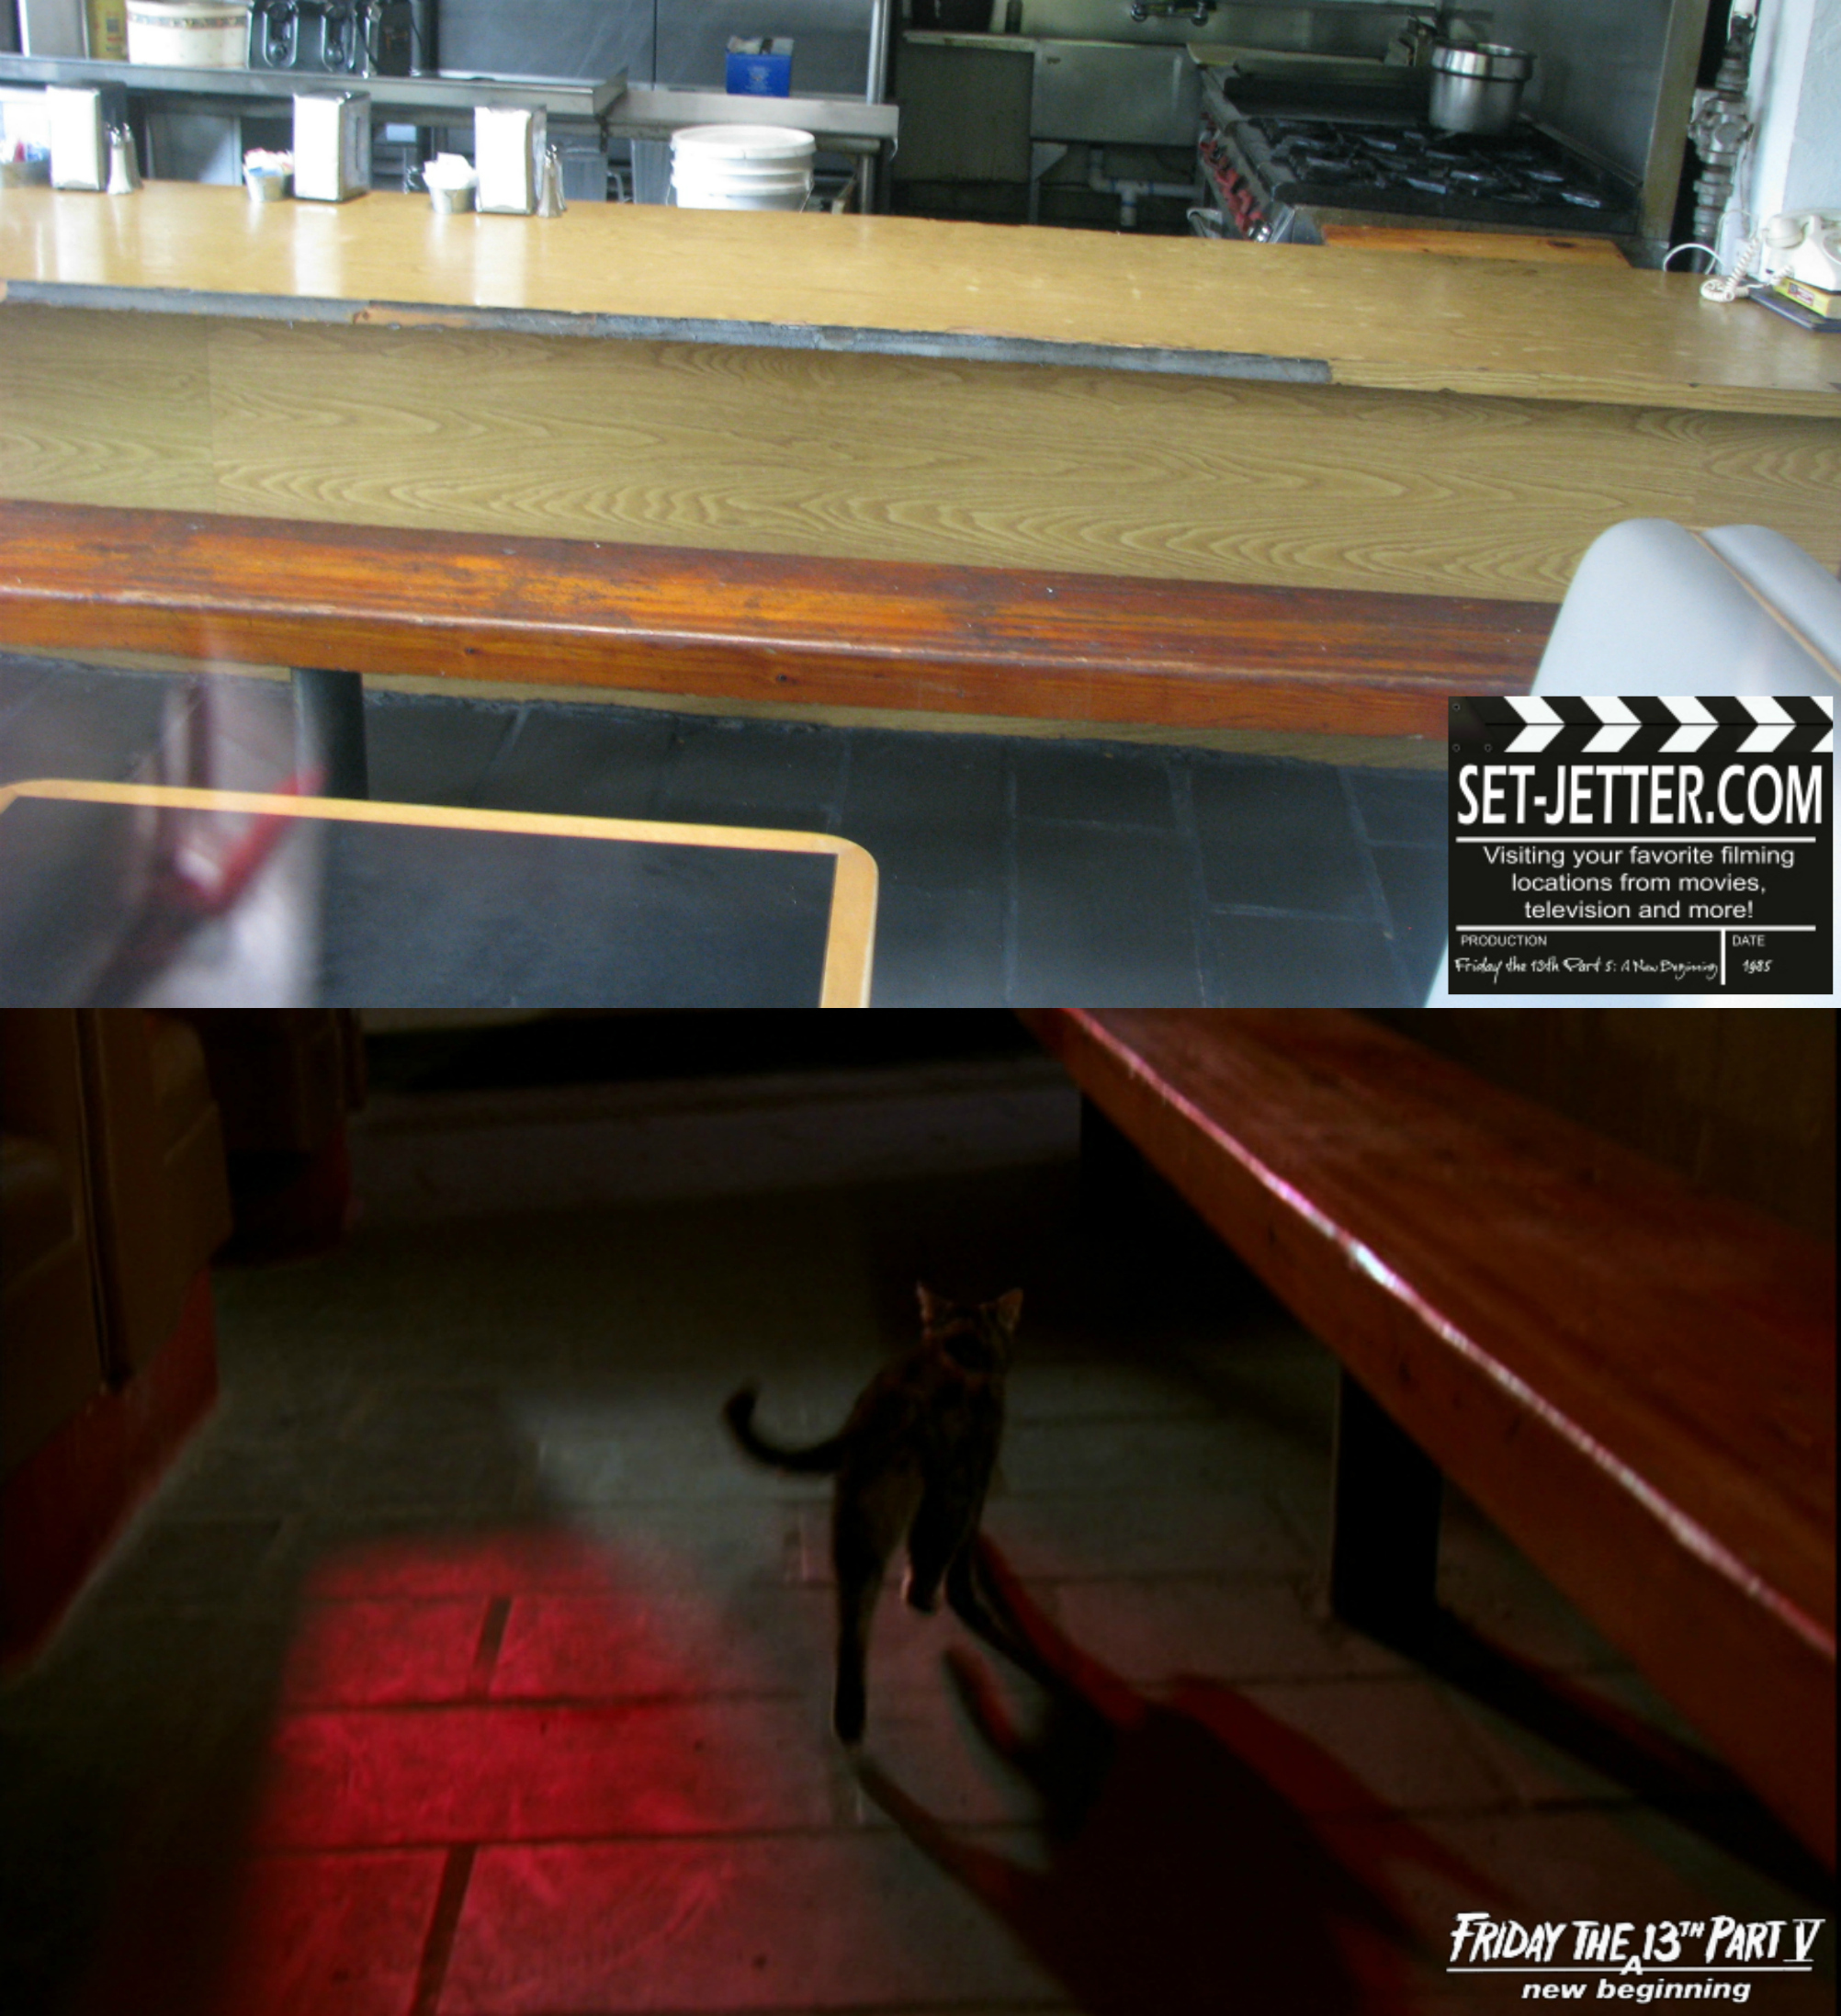 Friday the 13th Part V comparison 12.jpg